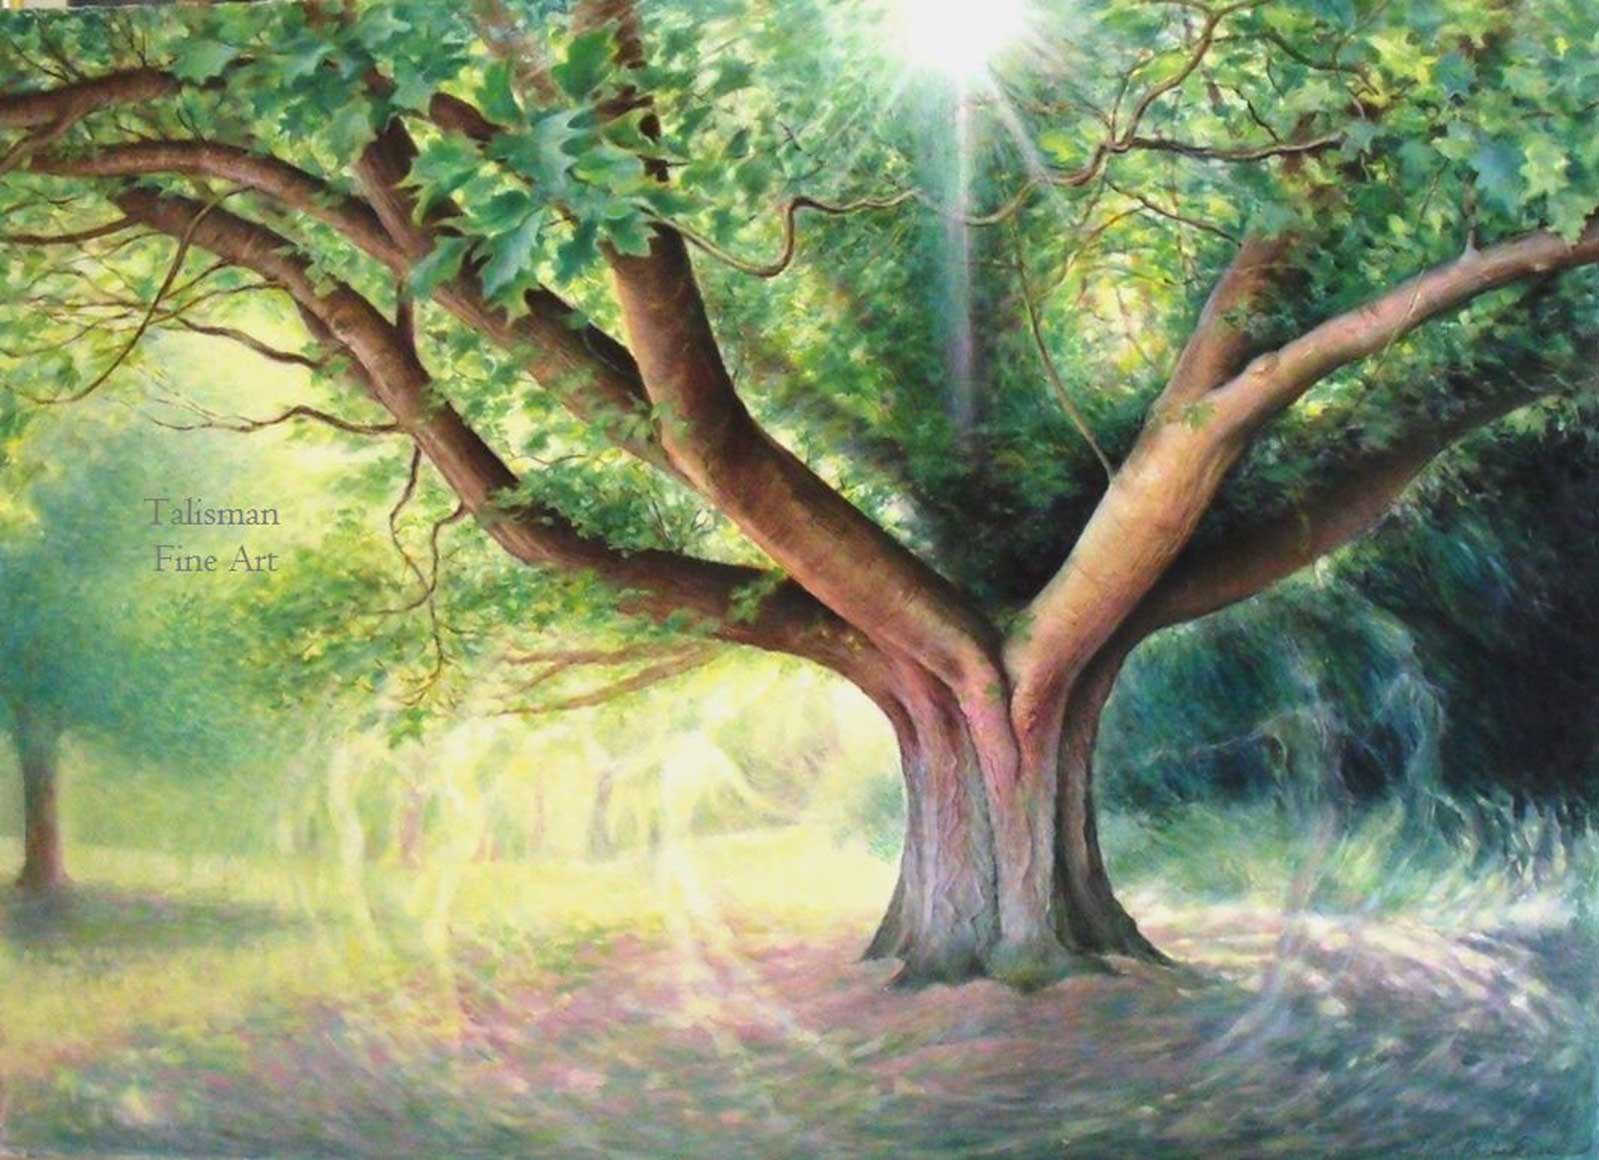 Talusman Fine Art Lynn Paula Russell - Tree Spirits (We have a large selection of Lynn Paula Russell works)